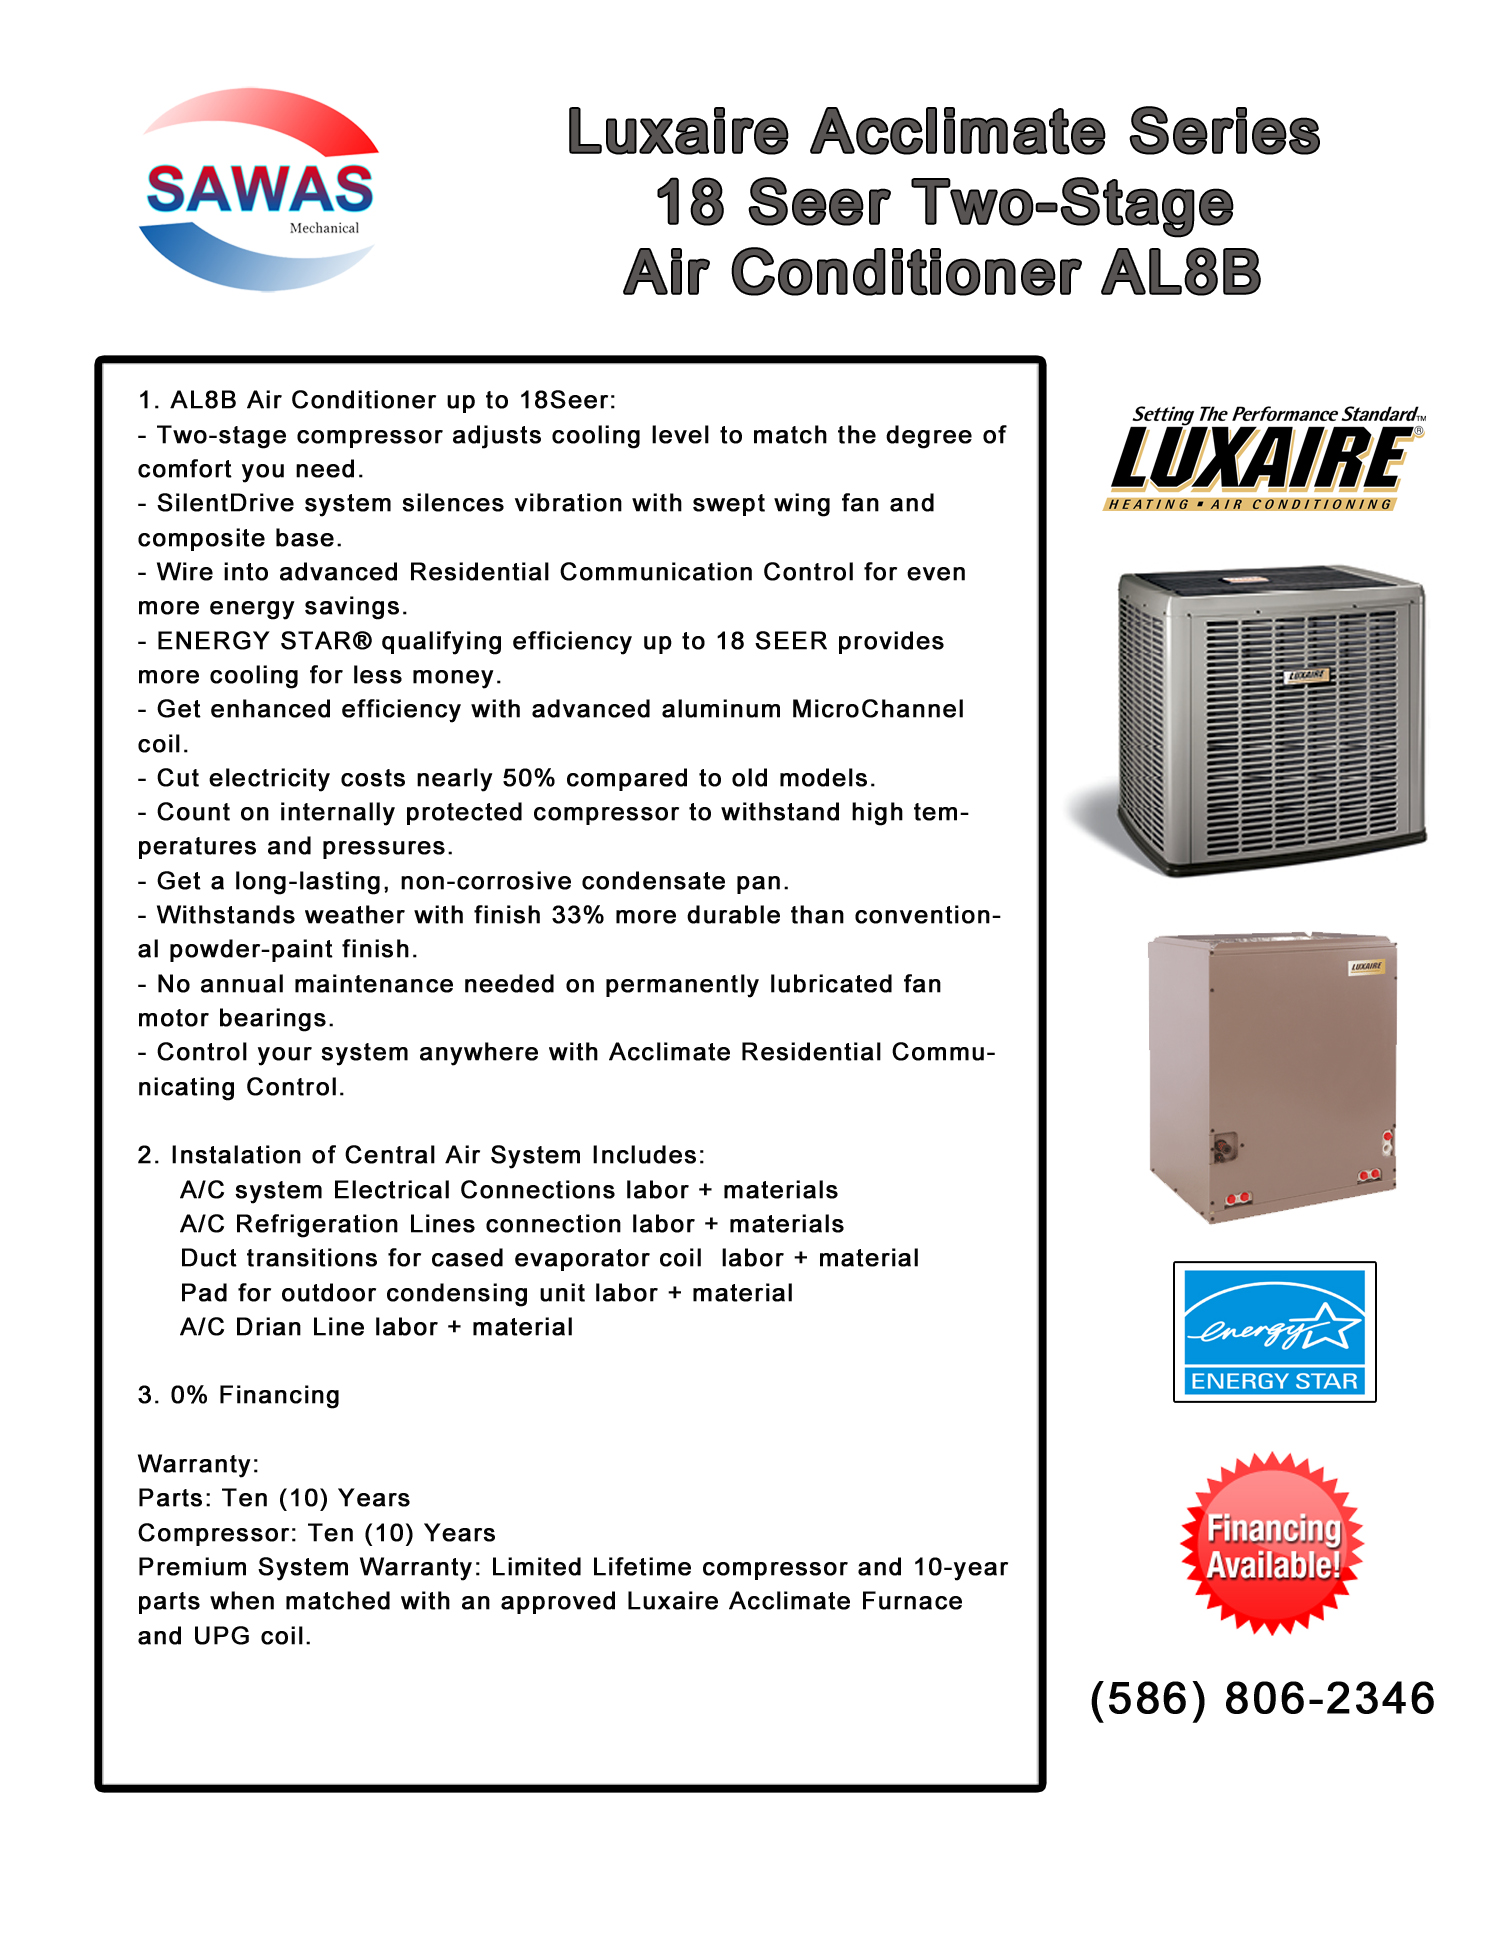 Luxaire Hvac Models Air Conditioners Wiring Diagrams Al Conditioner 1500x1941